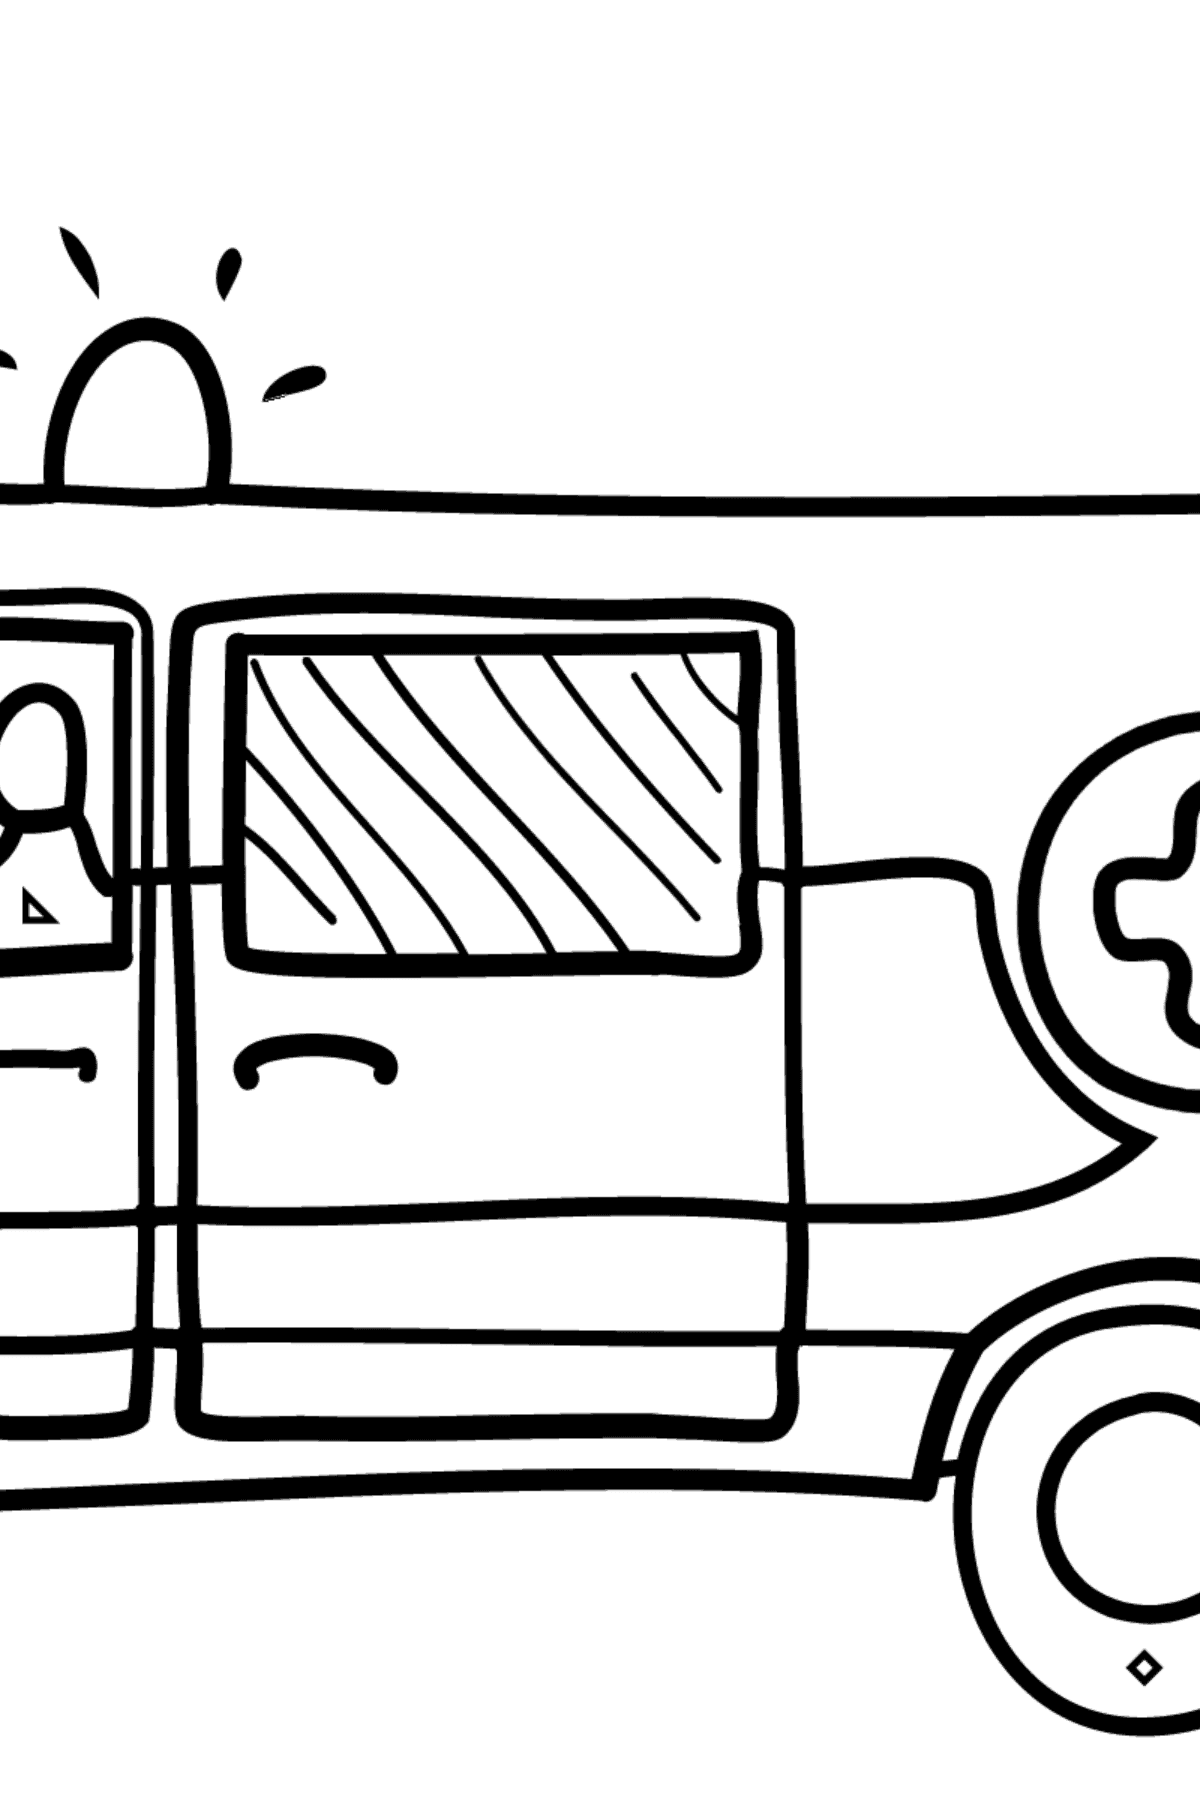 Coloring Page - An Ambulance for Kids  - Color by Symbols and Geometric Shapes